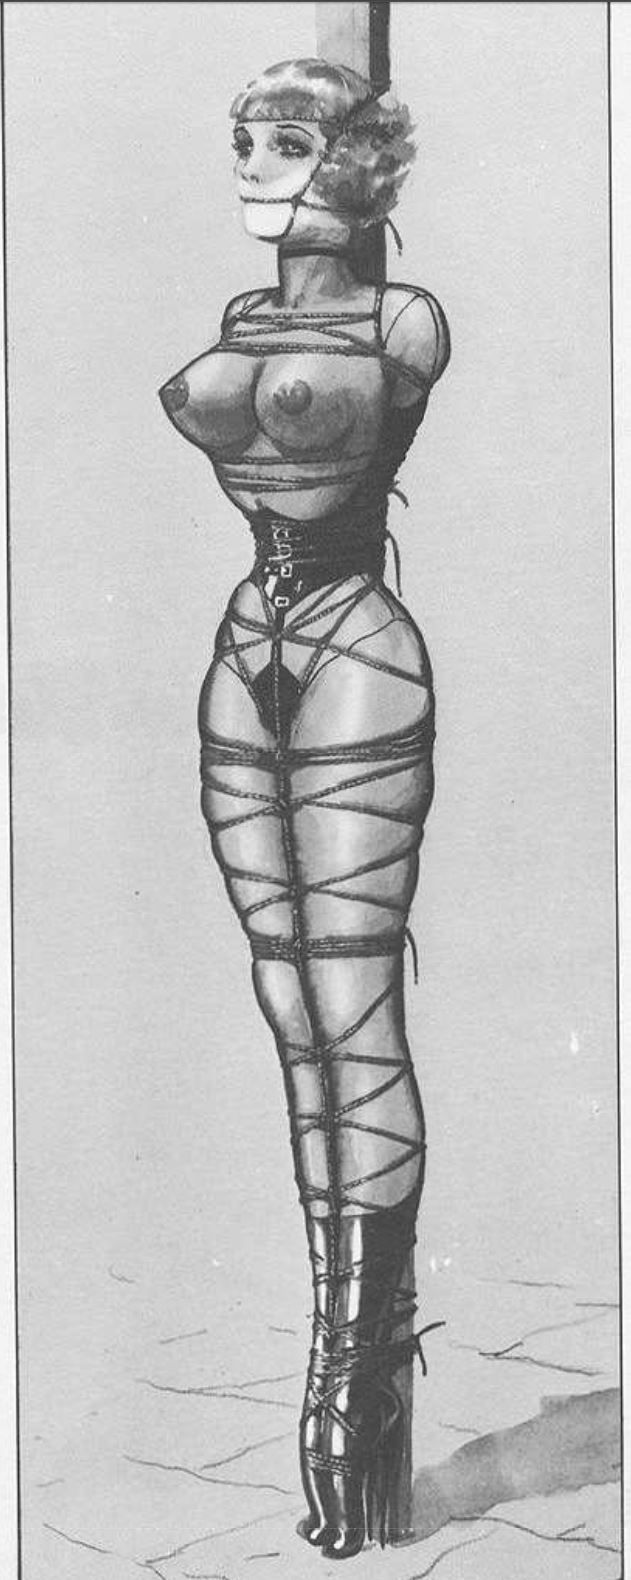 bondage-ideas-drawings-nude-invisible-woman-homemade-costume